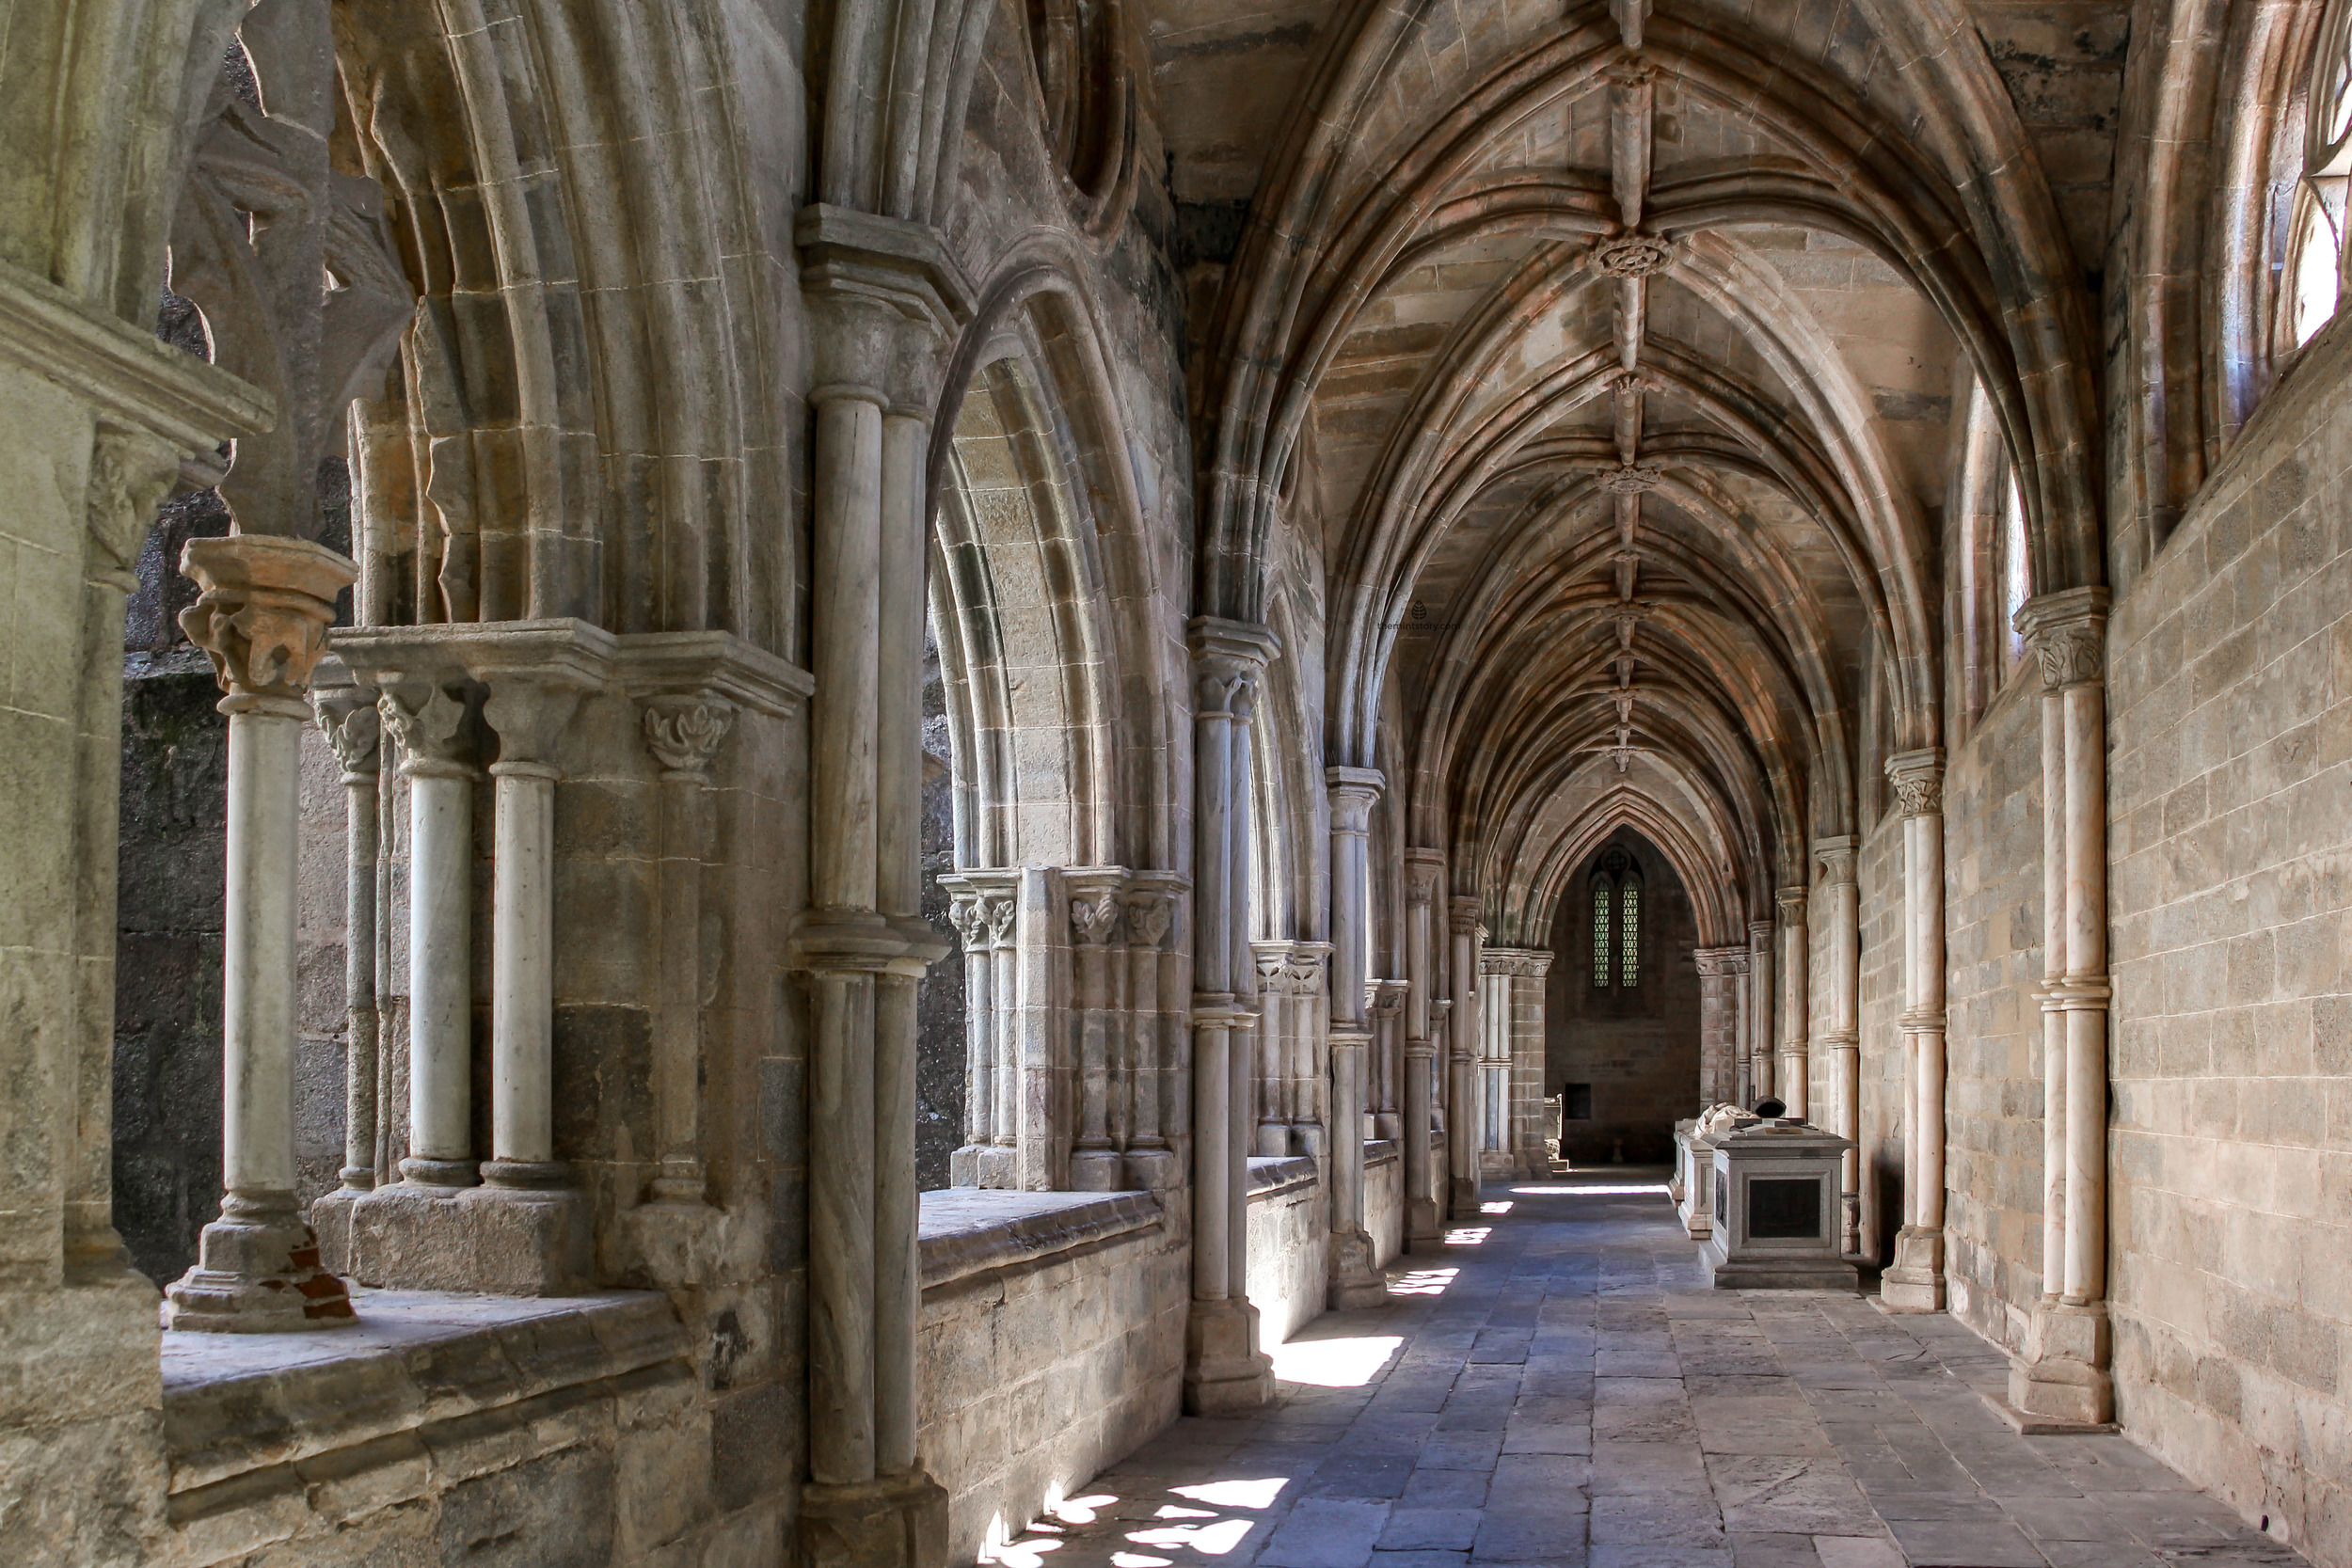 The cloister of the cathedral in Evora